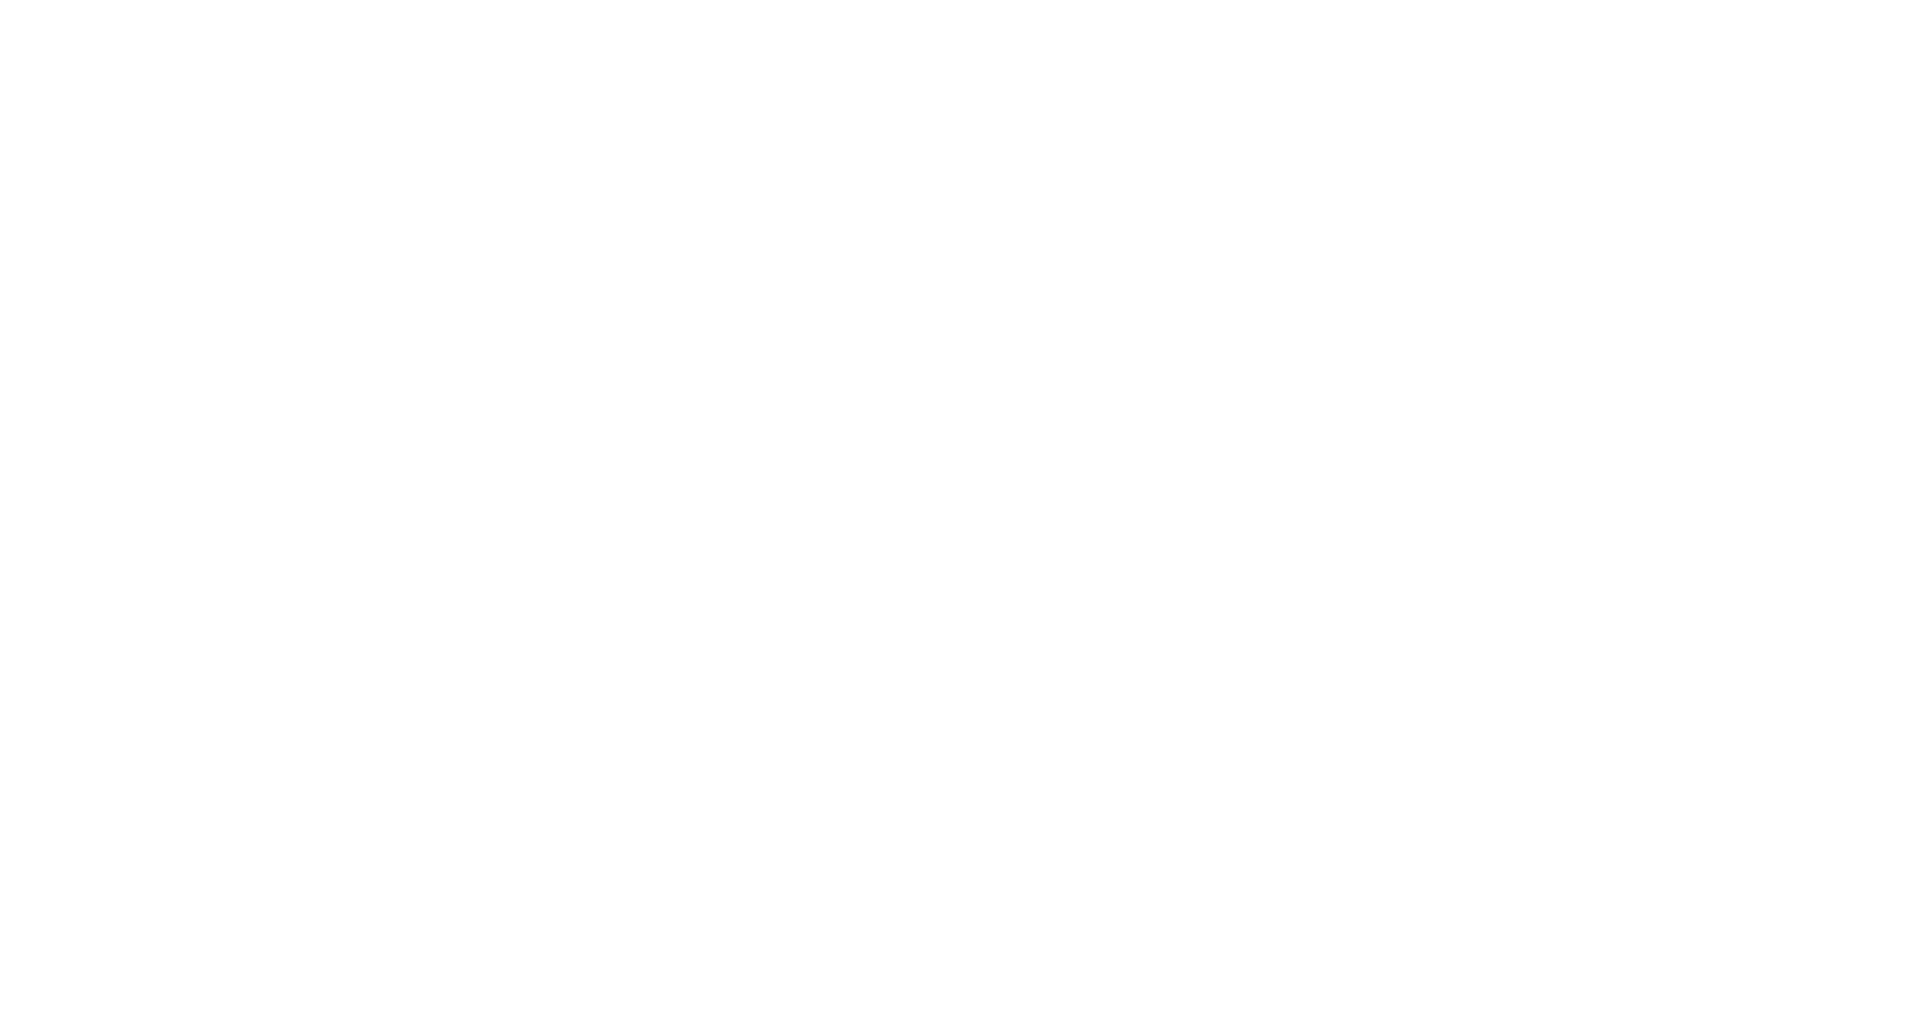 Smalley's Roundup Restaurant - logo